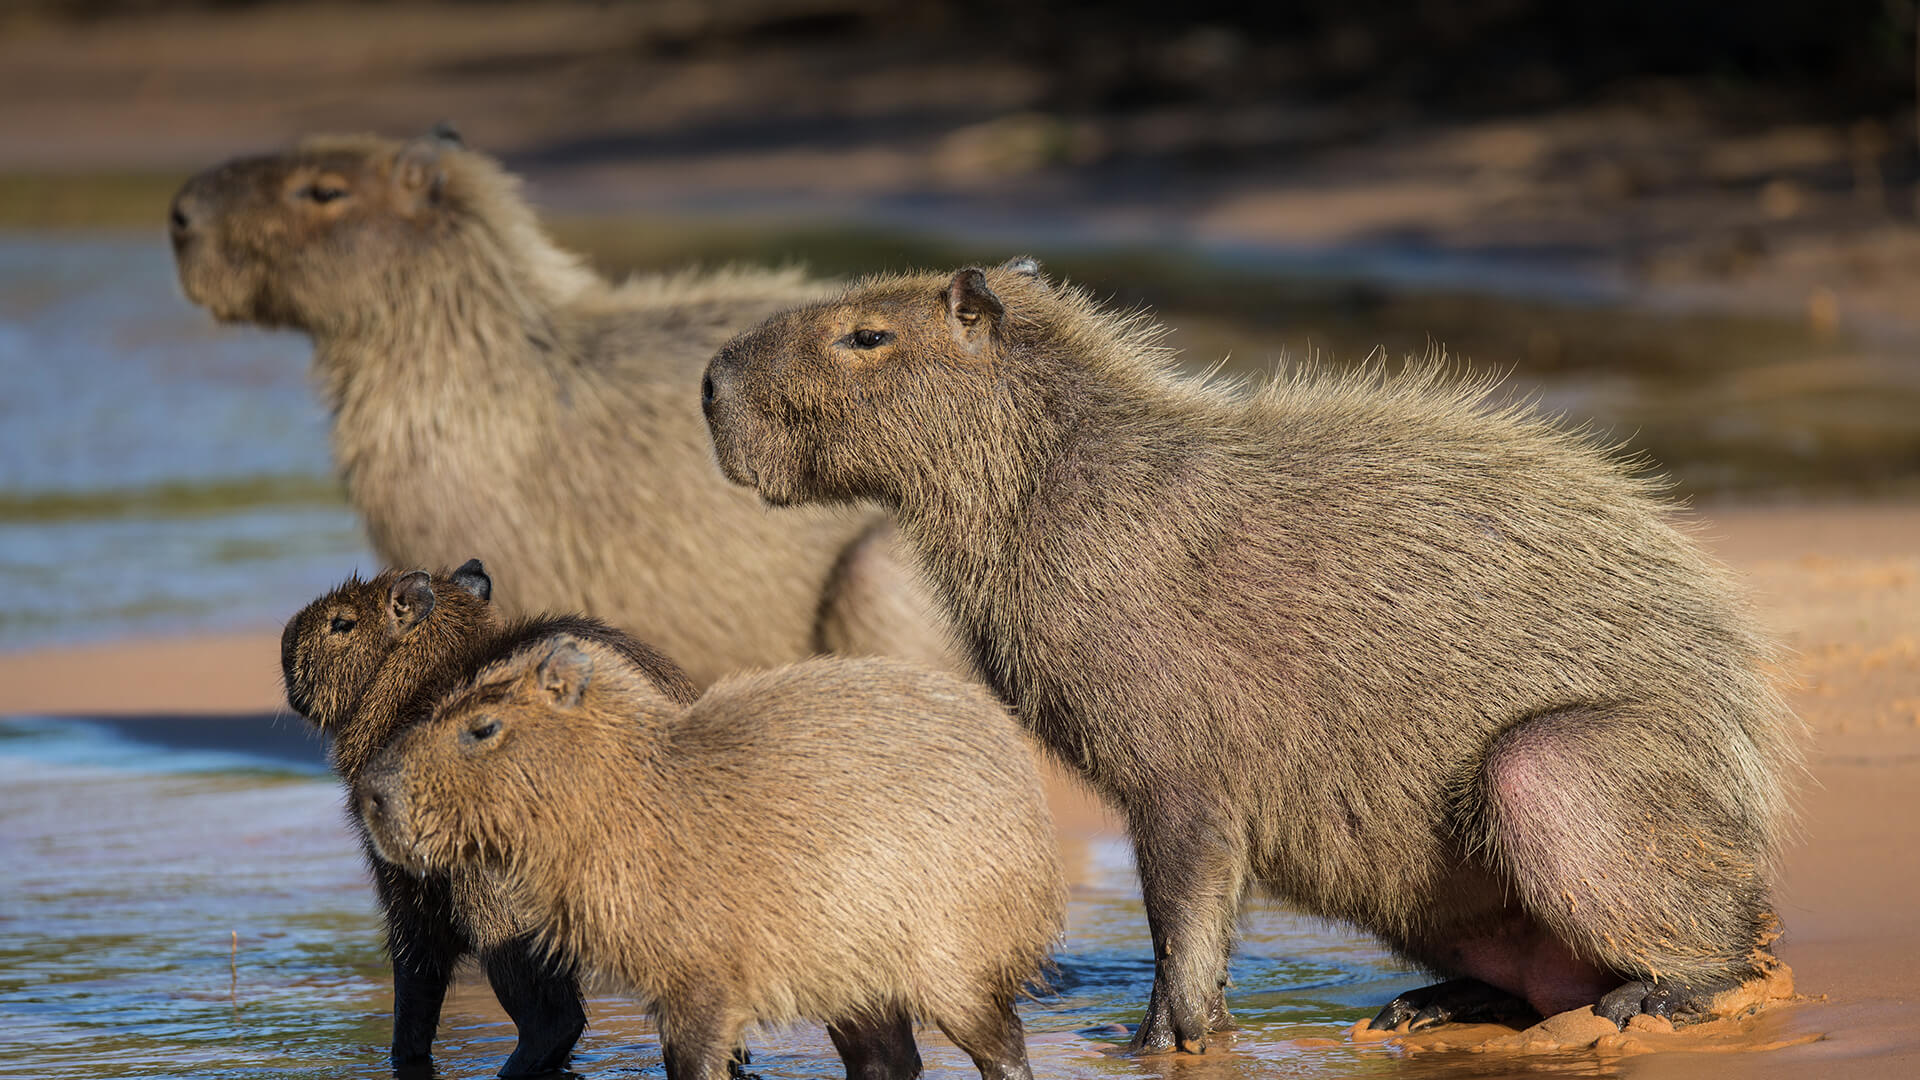 animals_hero_capybara.jpg (1920×1080)